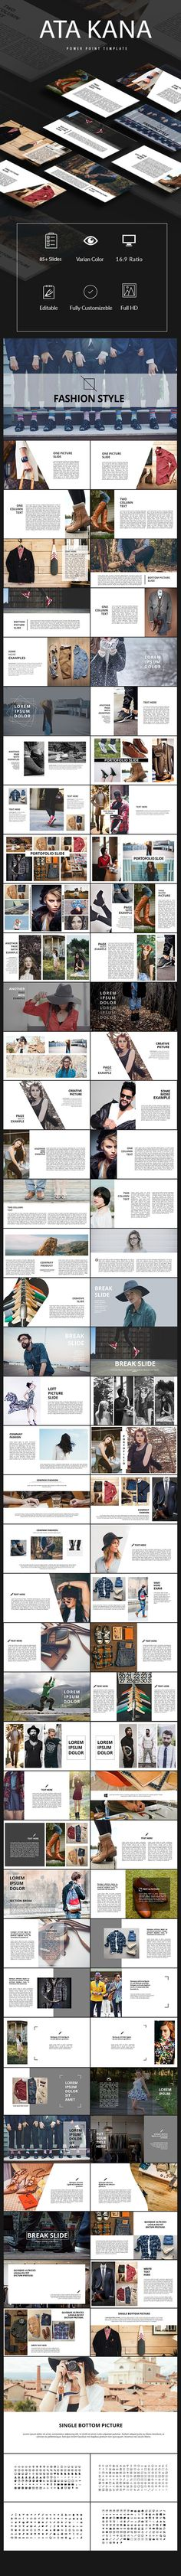 Fashion Power Point Template  #minimal #social media • Download ➝ https://graphicriver.net/item/fashion-power-point-template/18246447?ref=pxcr